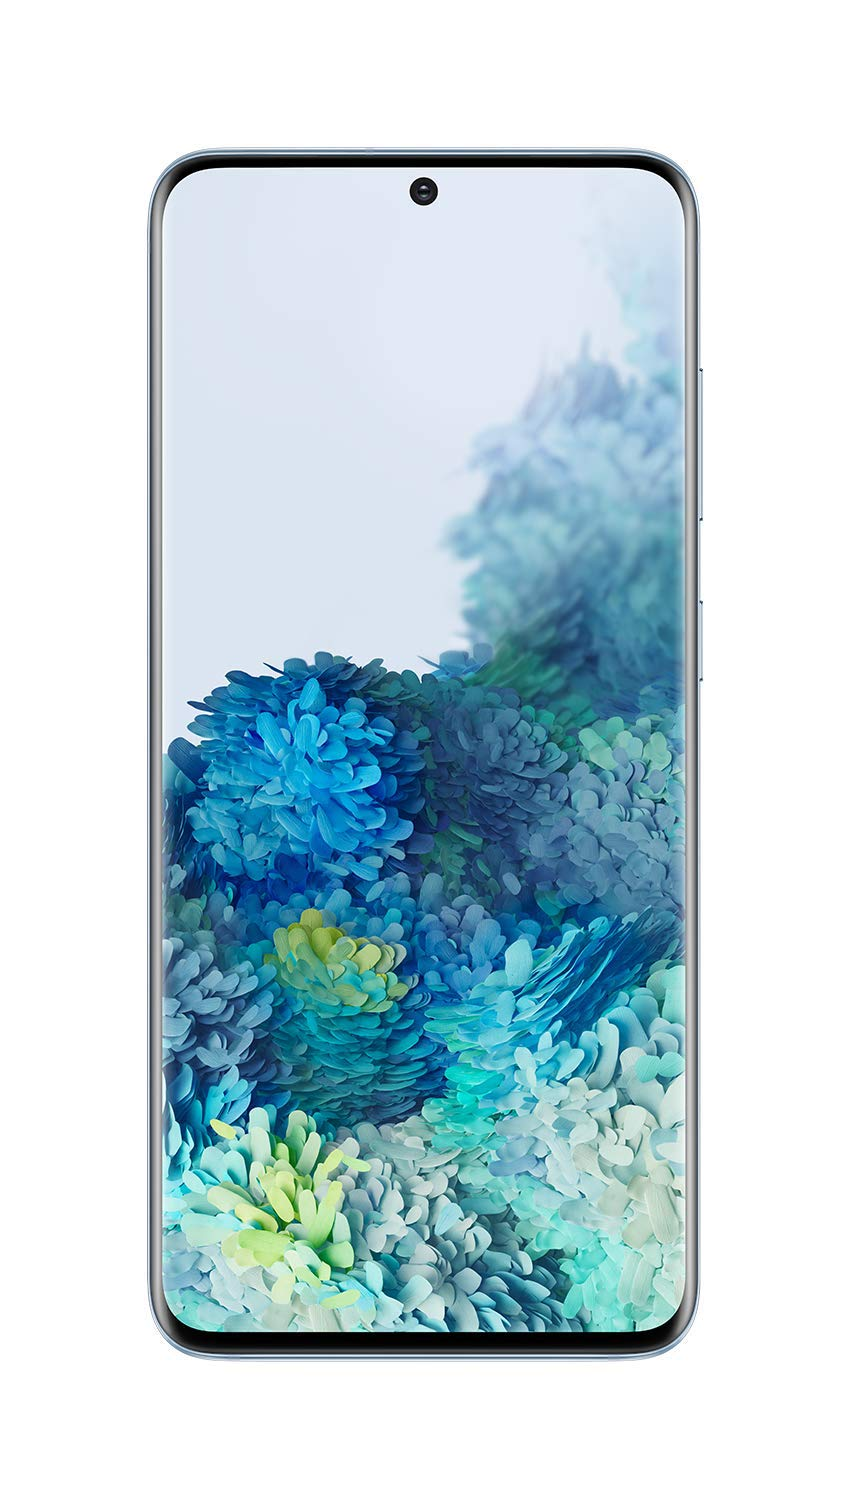 Samsung Galaxy S20 5G Factory Unlocked New Android Cell Phone US Version, 128GB of Storage, Fingerprint ID and Facial Reco...